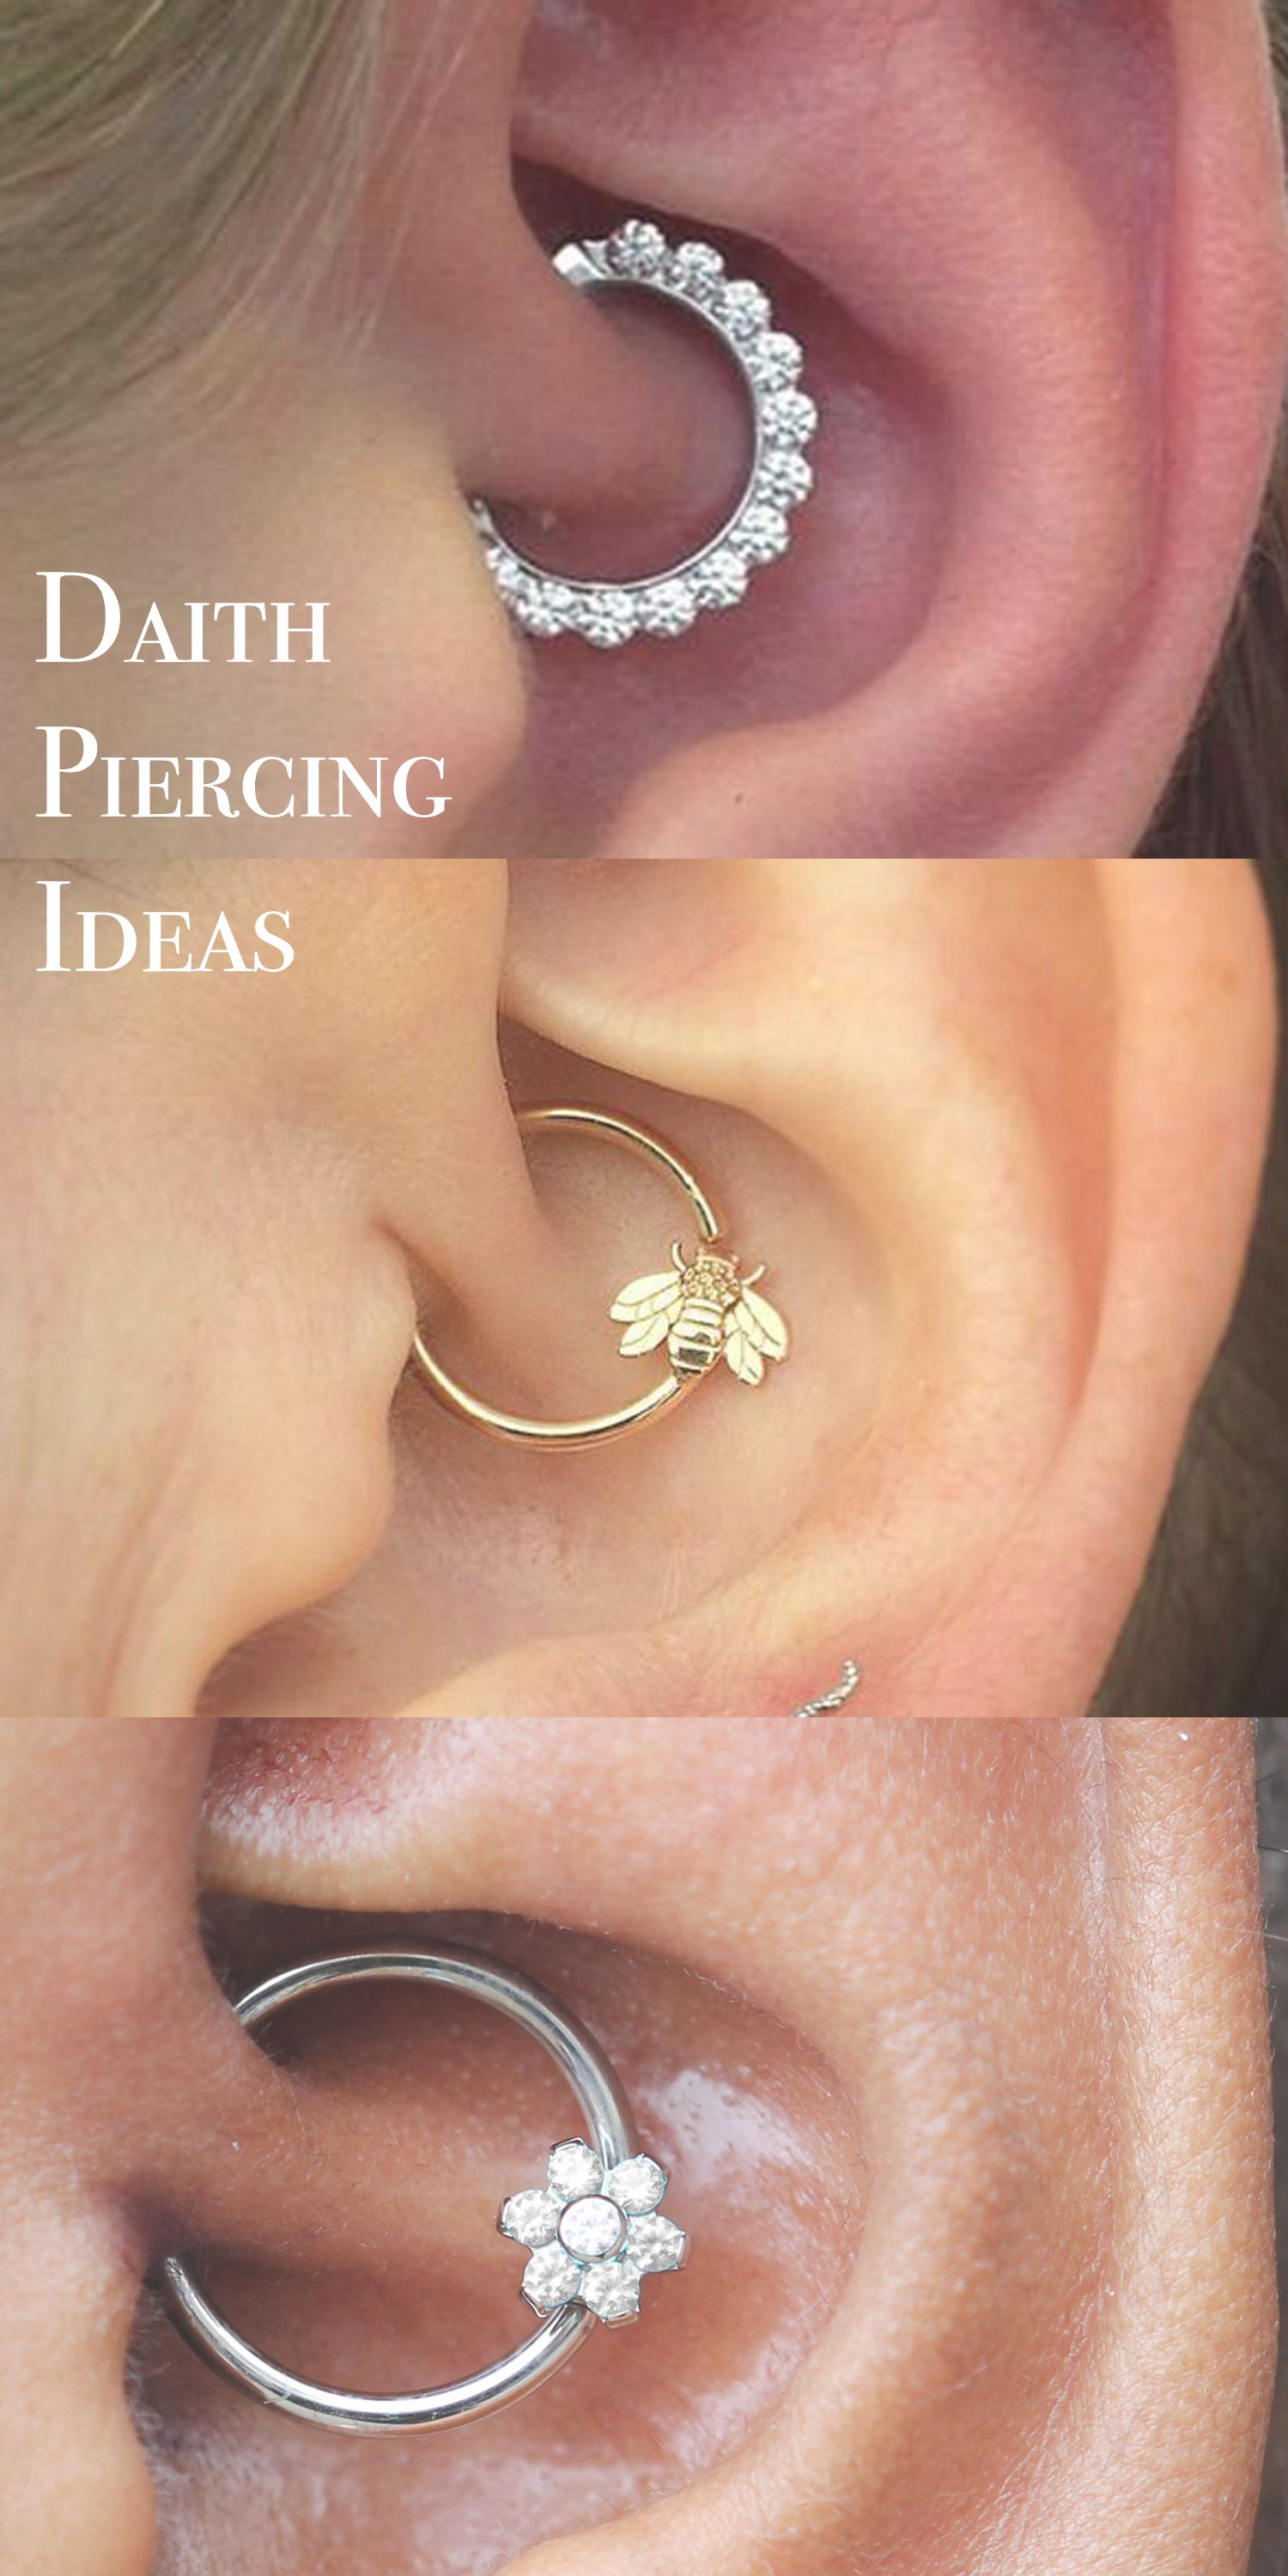 Piercing nose with earring  Brice Swarovski Crystal Clicker in Silver  Pretty Daith Piercing